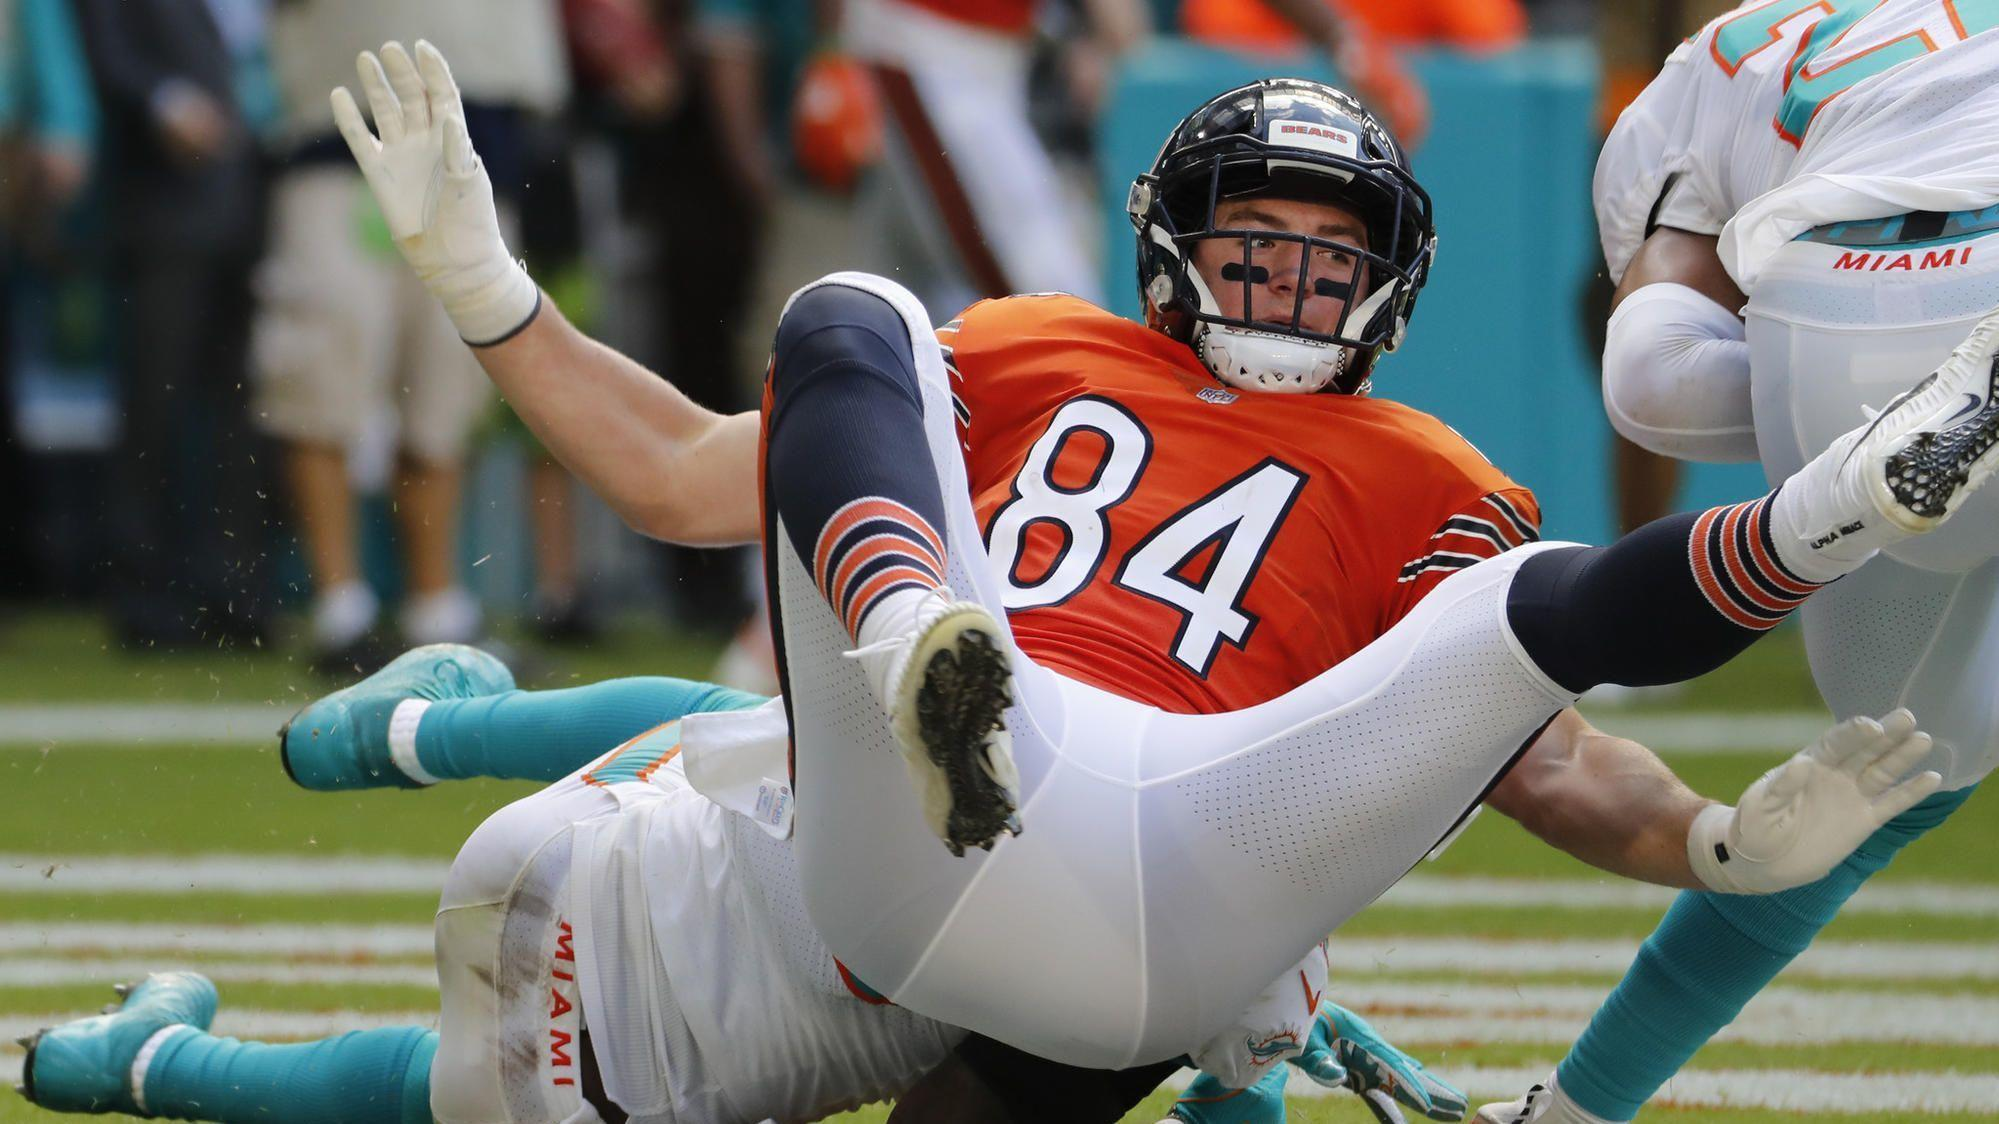 Ct-spt-bears-brutal-loss-dolphins-biggs-20181014